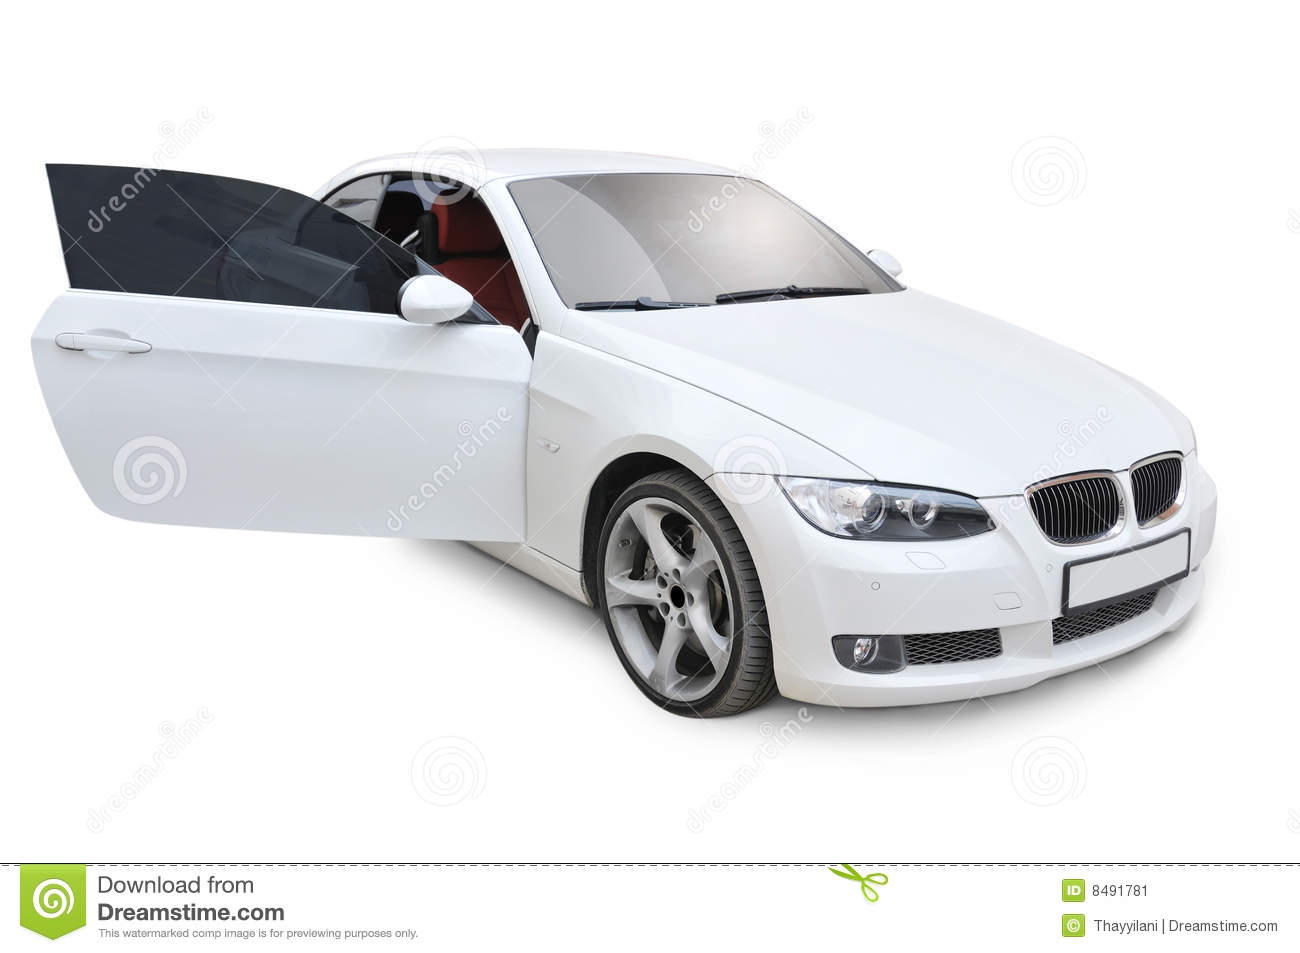 bmw 335i right door open stock image image of front cars 8491781. Black Bedroom Furniture Sets. Home Design Ideas